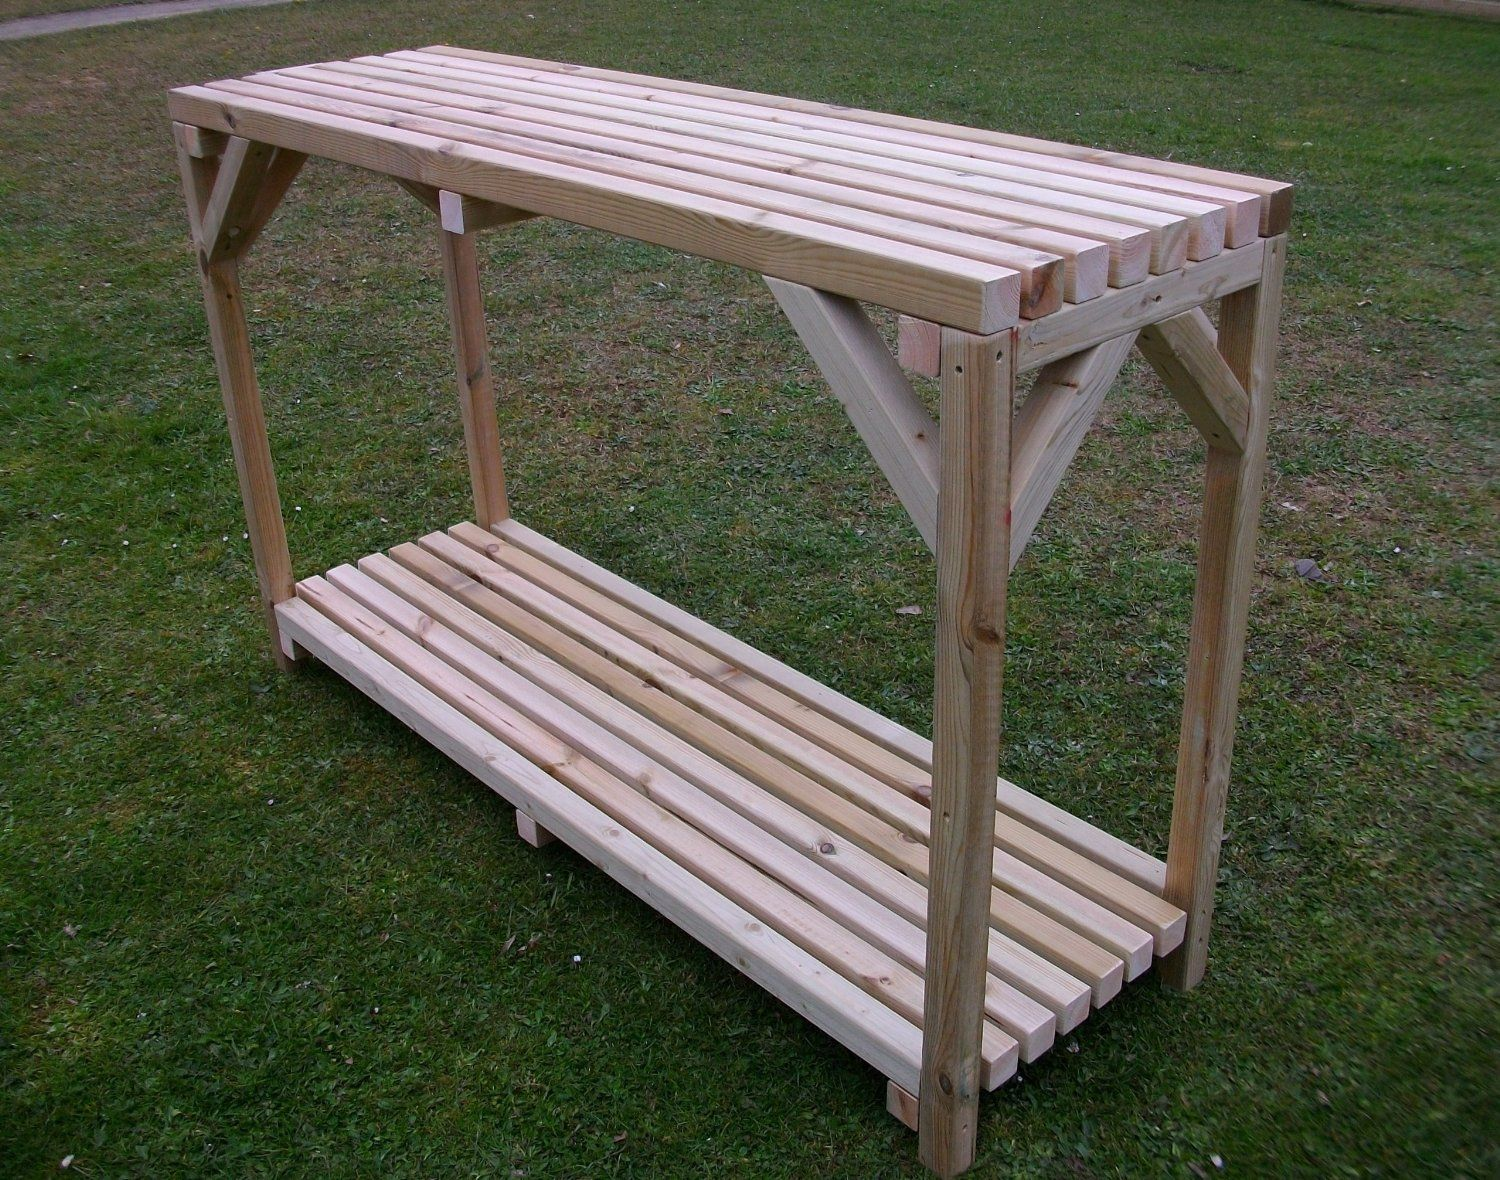 Wooden greenhouse shed potting bench staging table with for Inexpensive greenhouse shelving wood